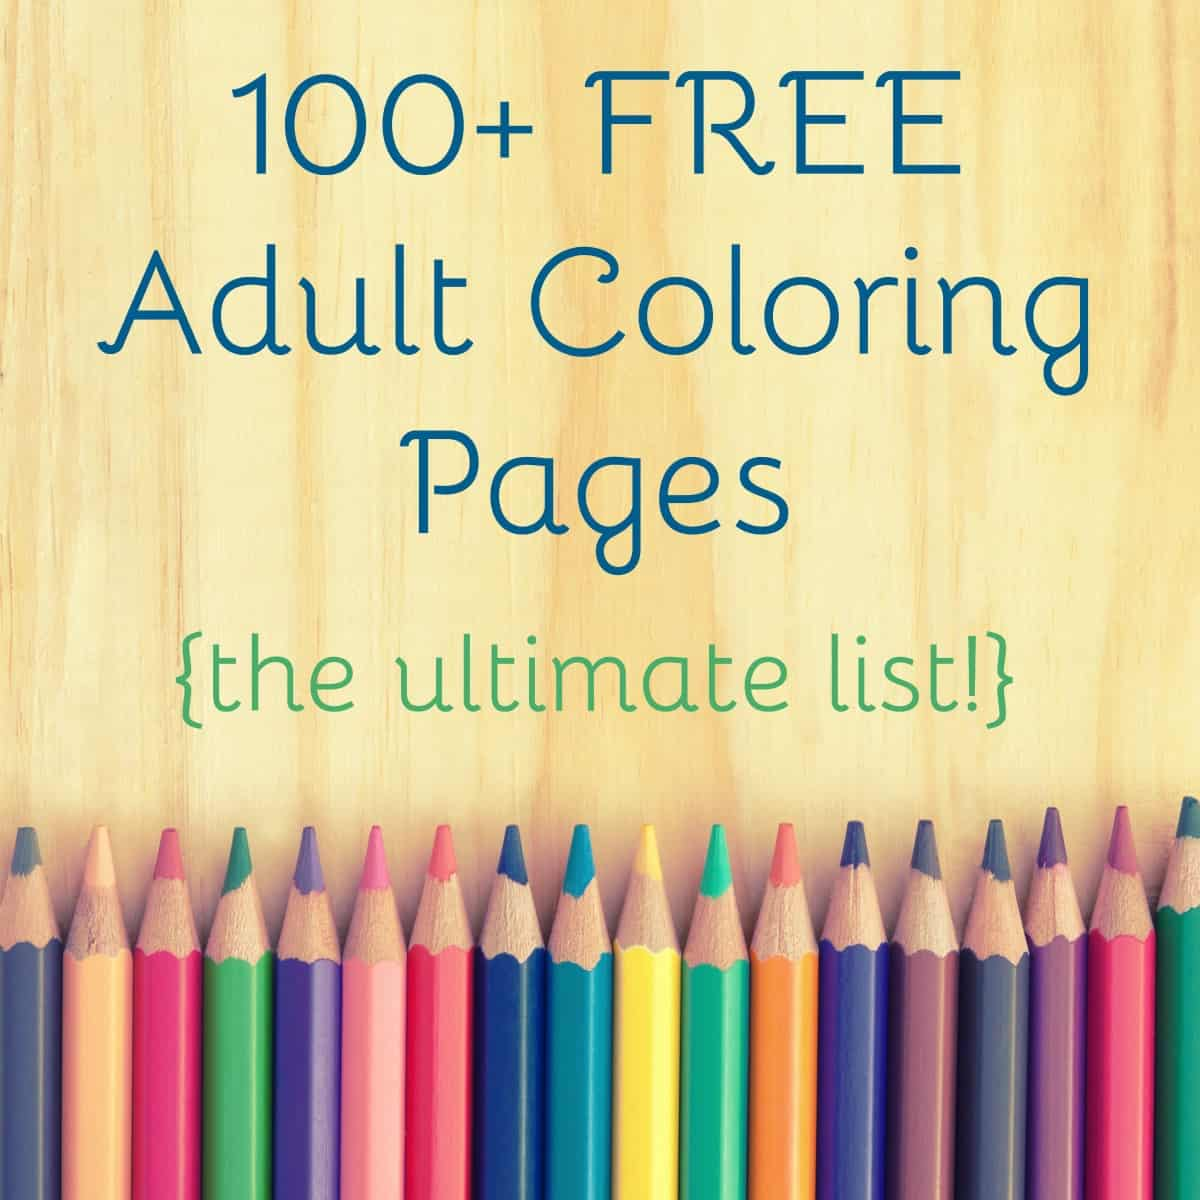 Free coloring pages com printable - Get Links To Over 100 Free Coloring Pages You Ll Love These Favorites Including